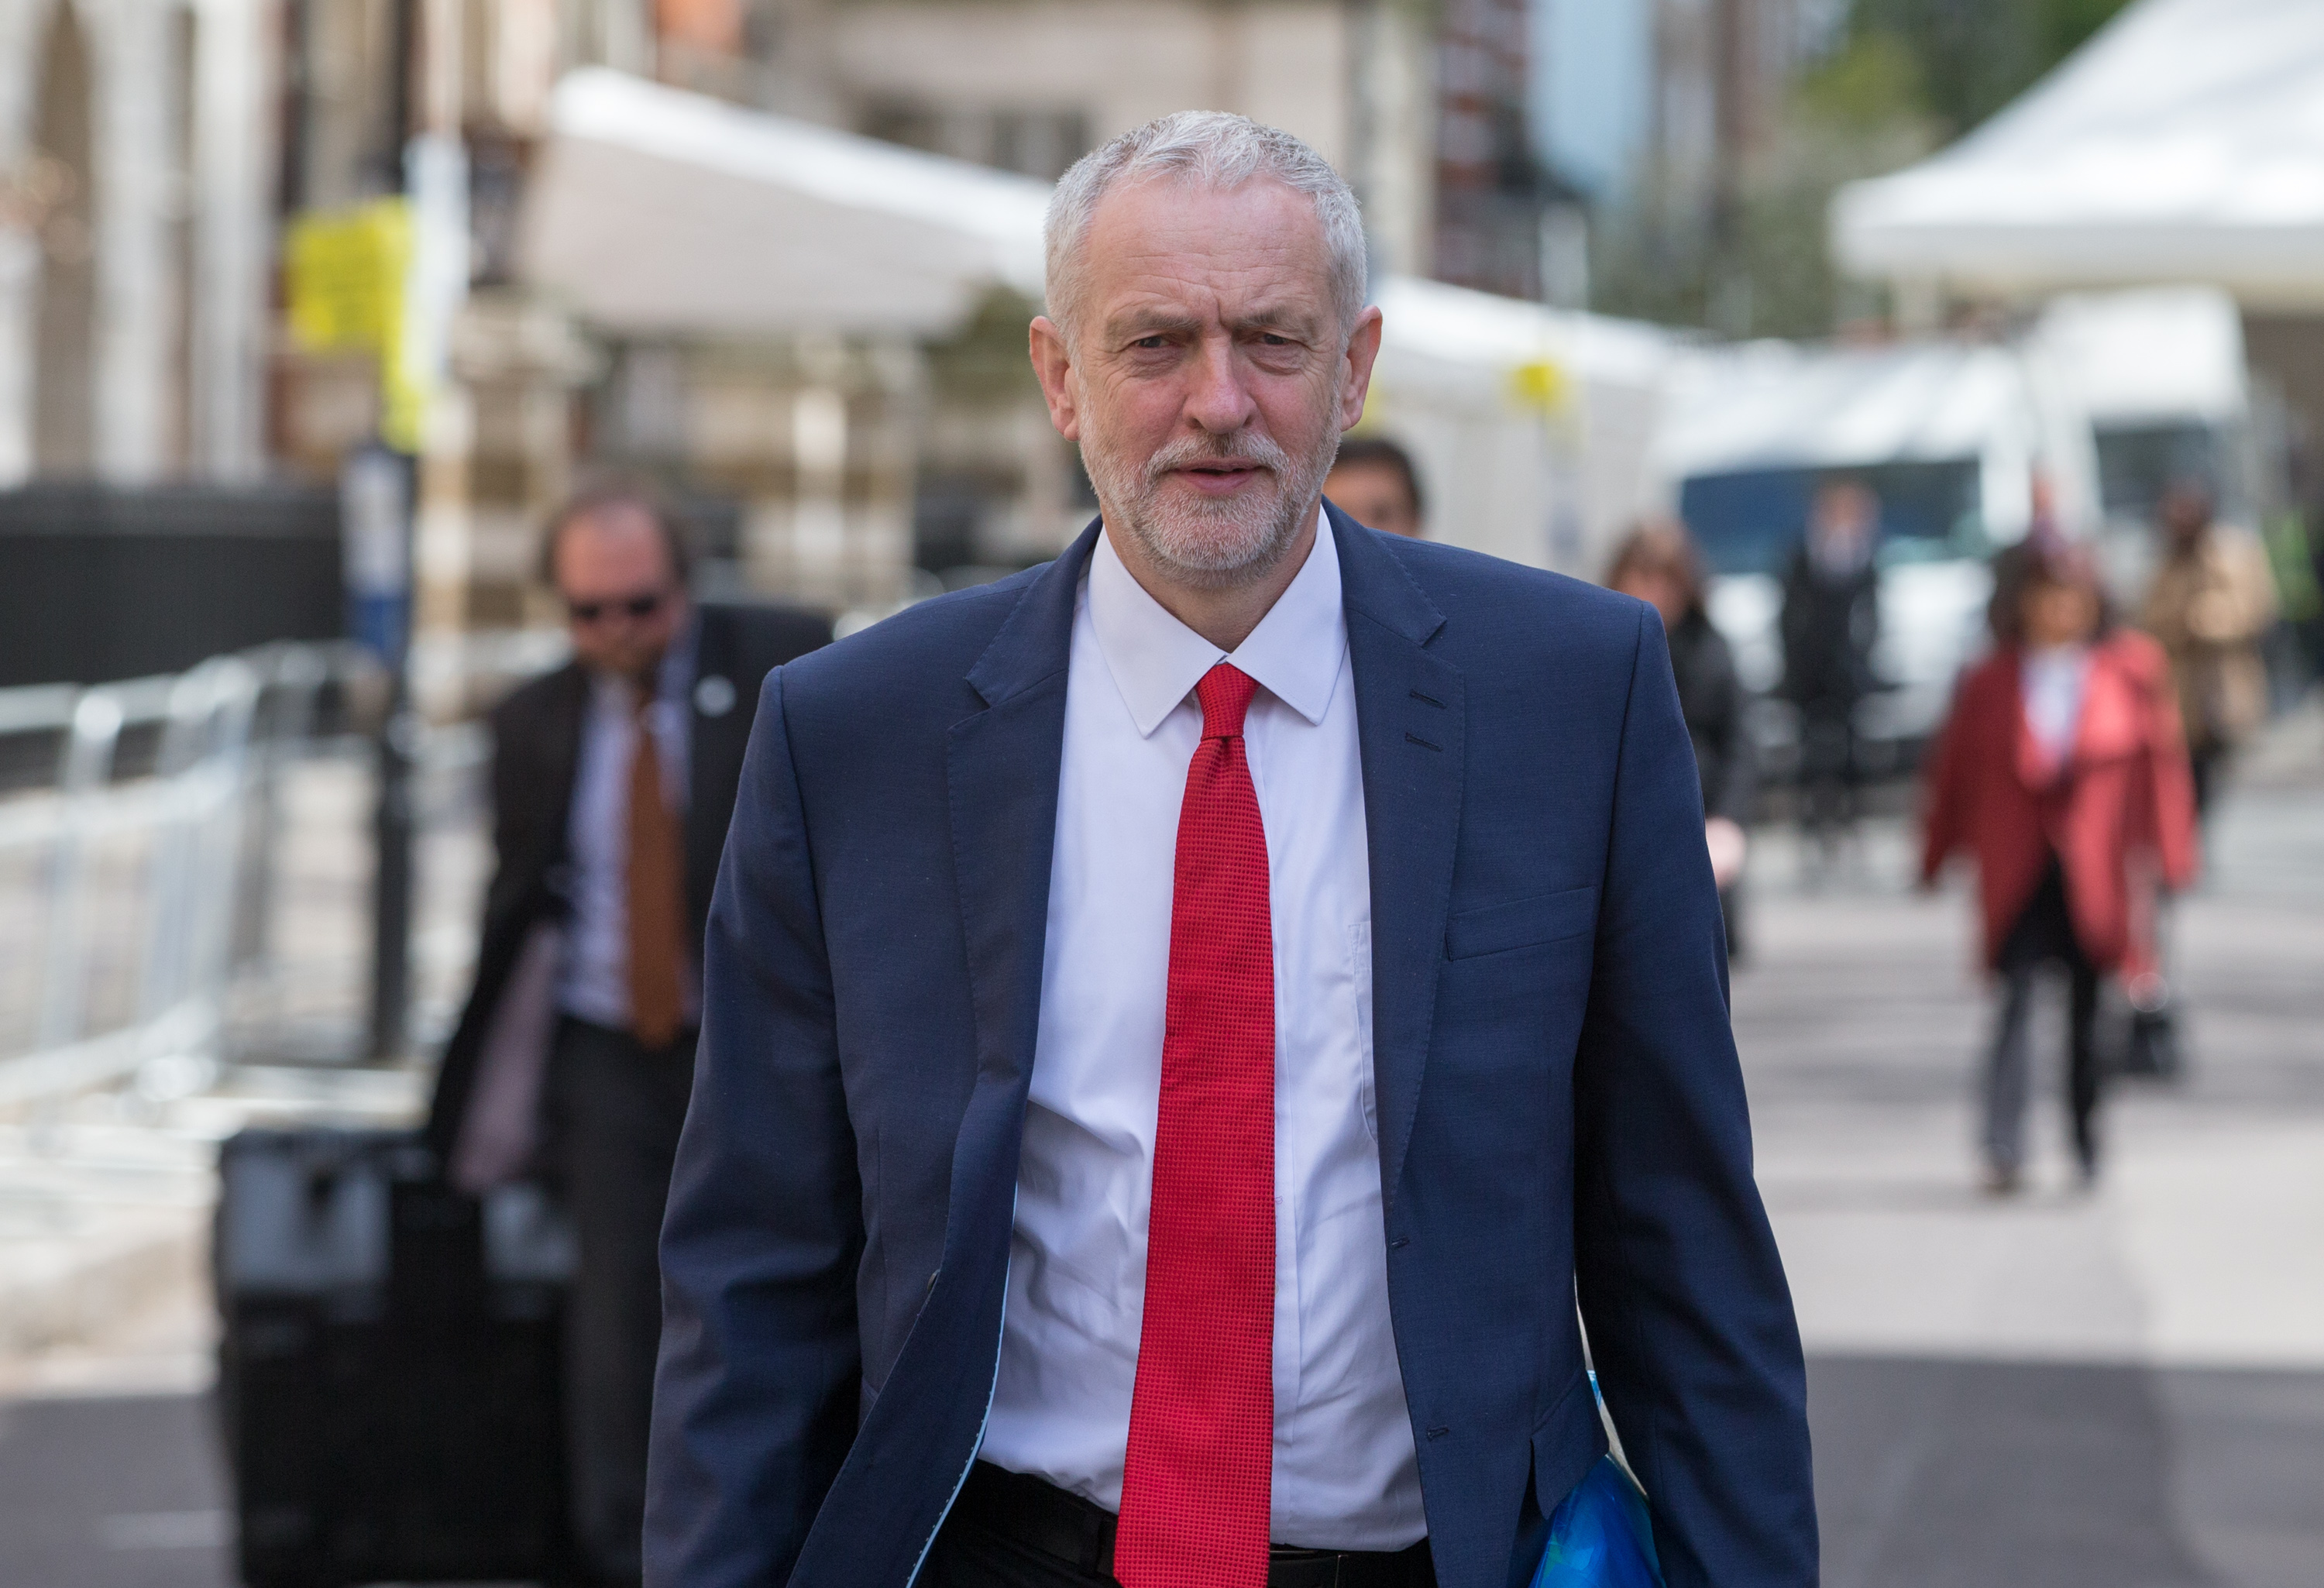 Labour Party leader Jeremy Corbyn leaves after meeting with US President Barack Obama after he spoke at the Royal Horticultural Halls in London on April 23, 2016.